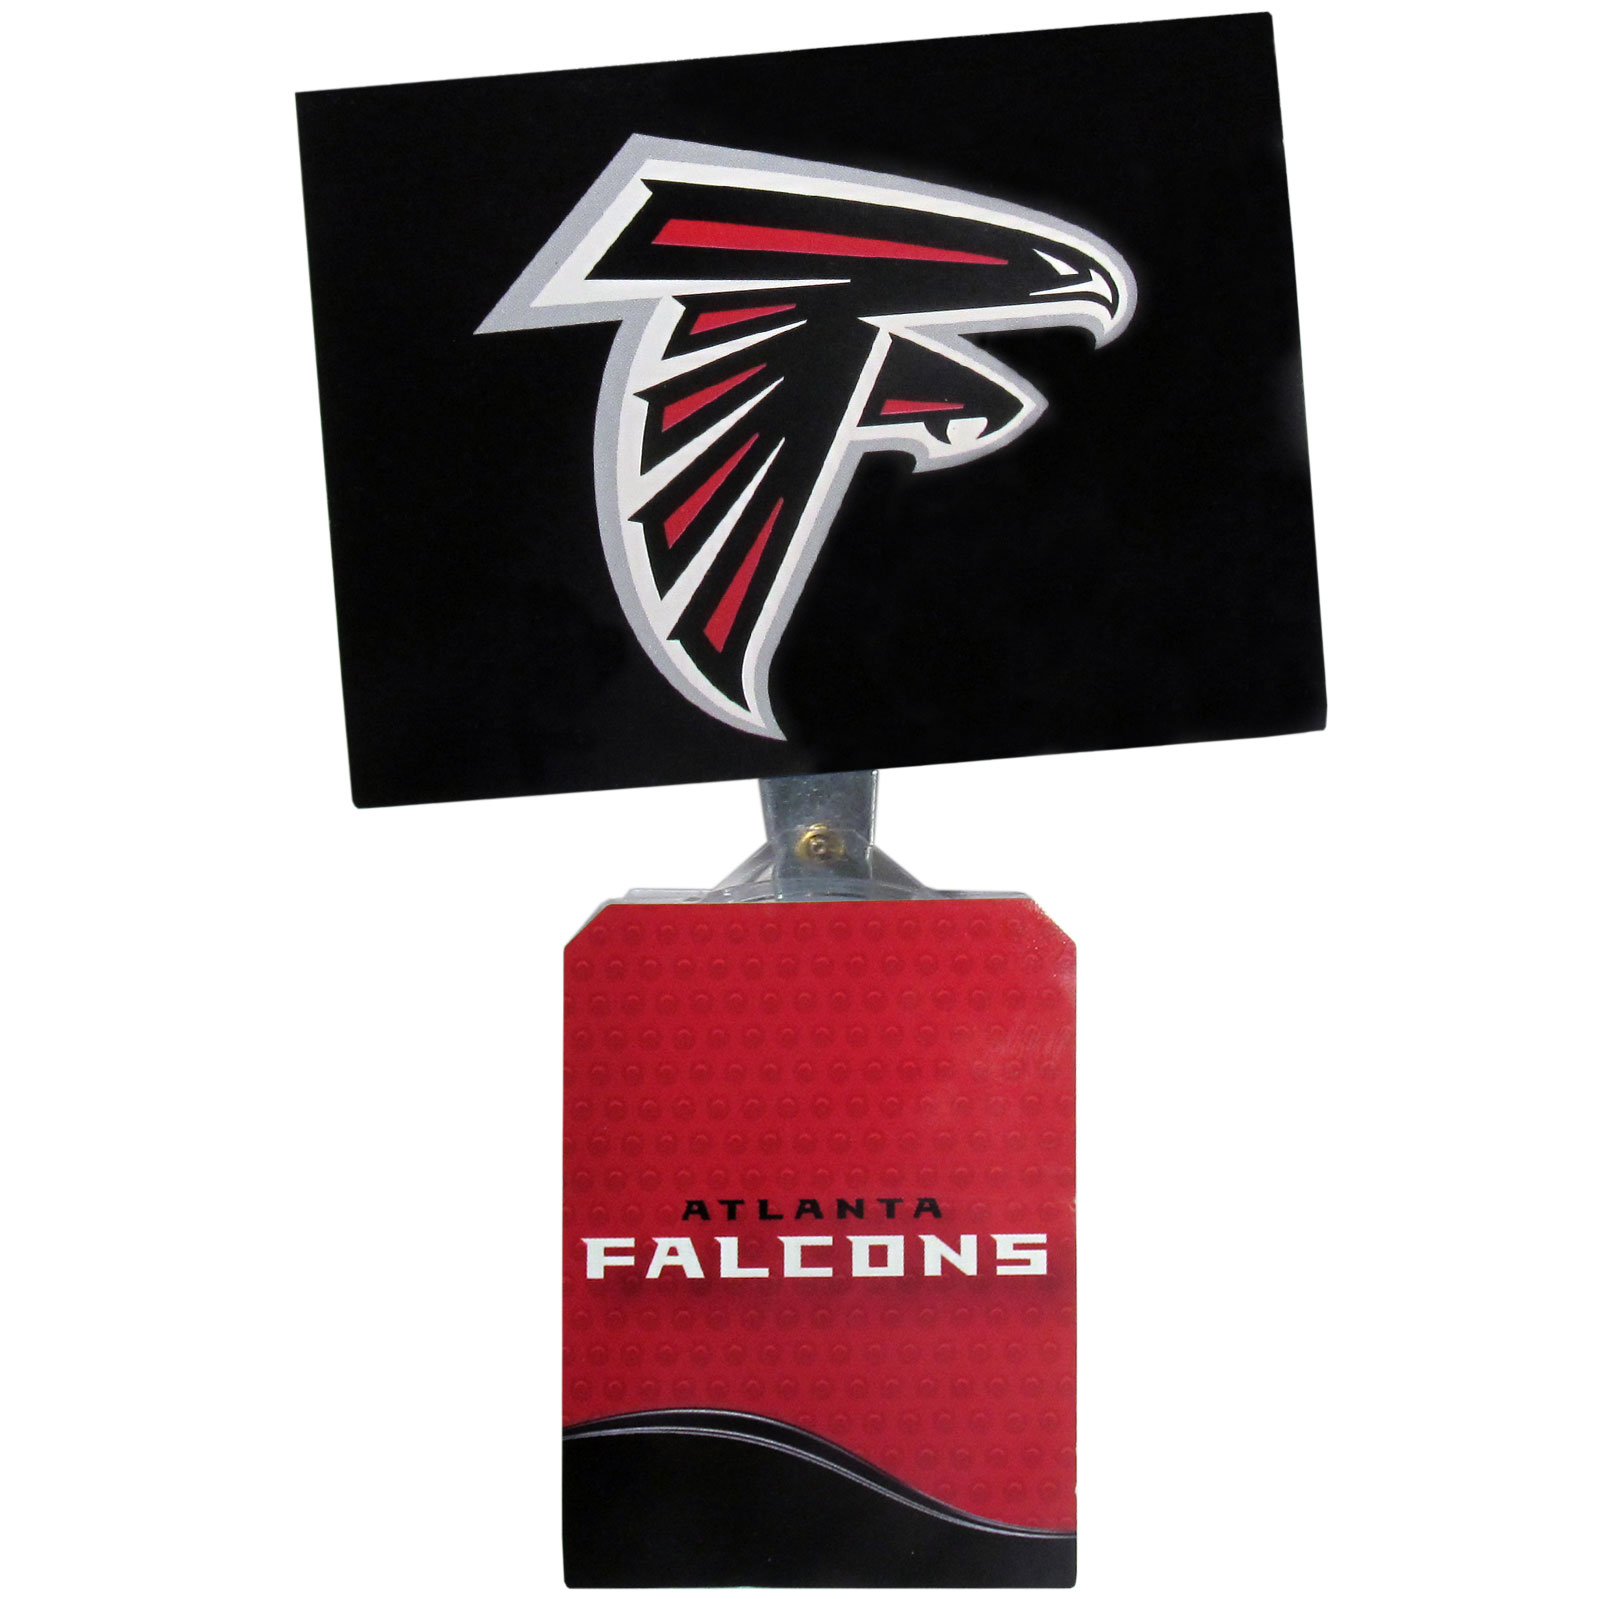 Atlanta Falcons Solar Flags - Get pumped up on the way to game with Siskiyou's Chicago Bears Atlanta Falcons Solar Flag that mounts to your dashboard or window. The in-motion solar flag also doubles as decoration for your tailgate or homegate! The base of the flag is 3 inches tall and the flag is 4 inches making the entire in-motion solar flag stand at 7 inches tall. Keep your spirit moving with your favorite team's Solar Flag.